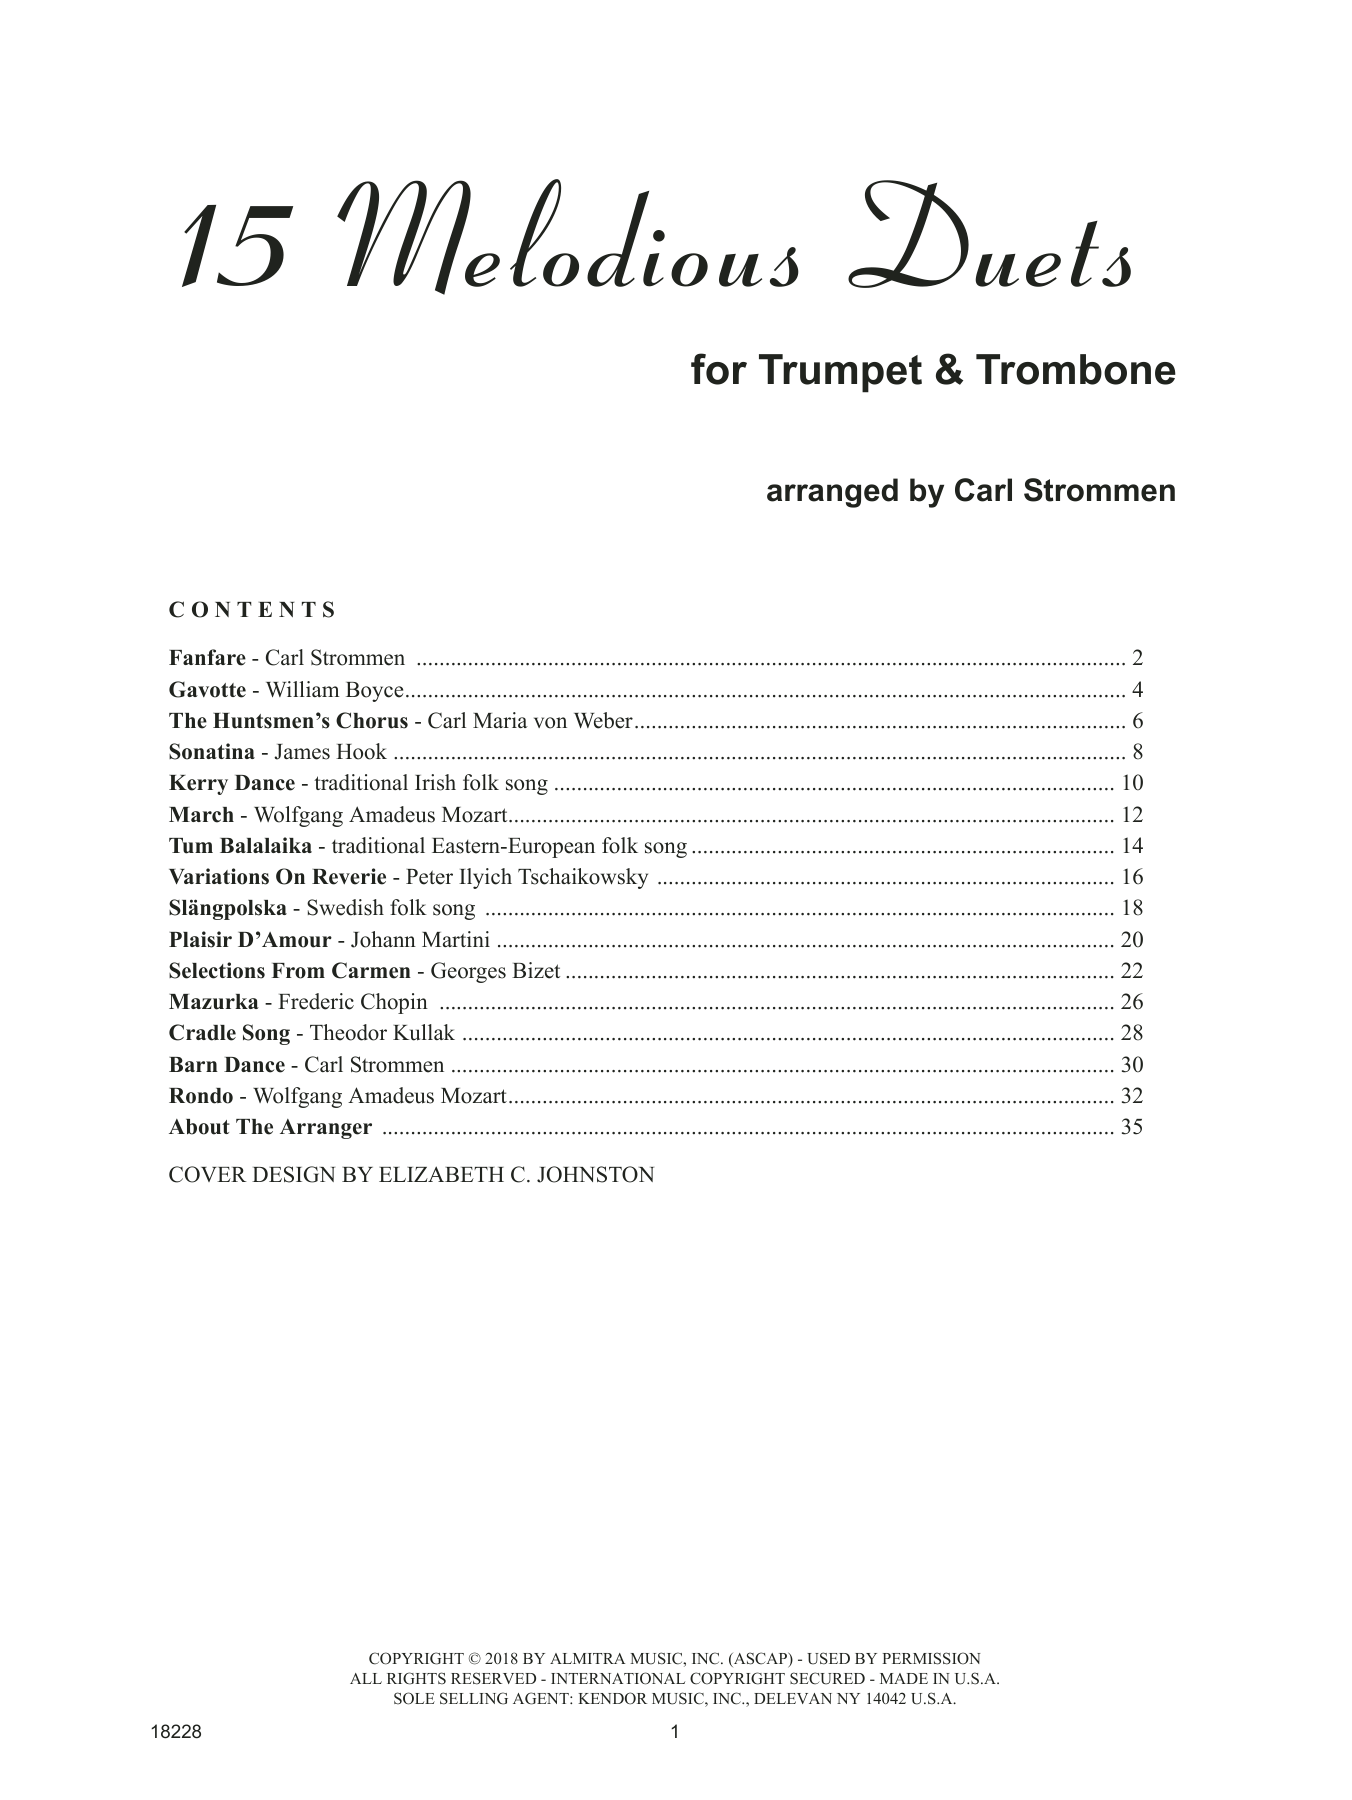 15 Melodious Duets Sheet Music